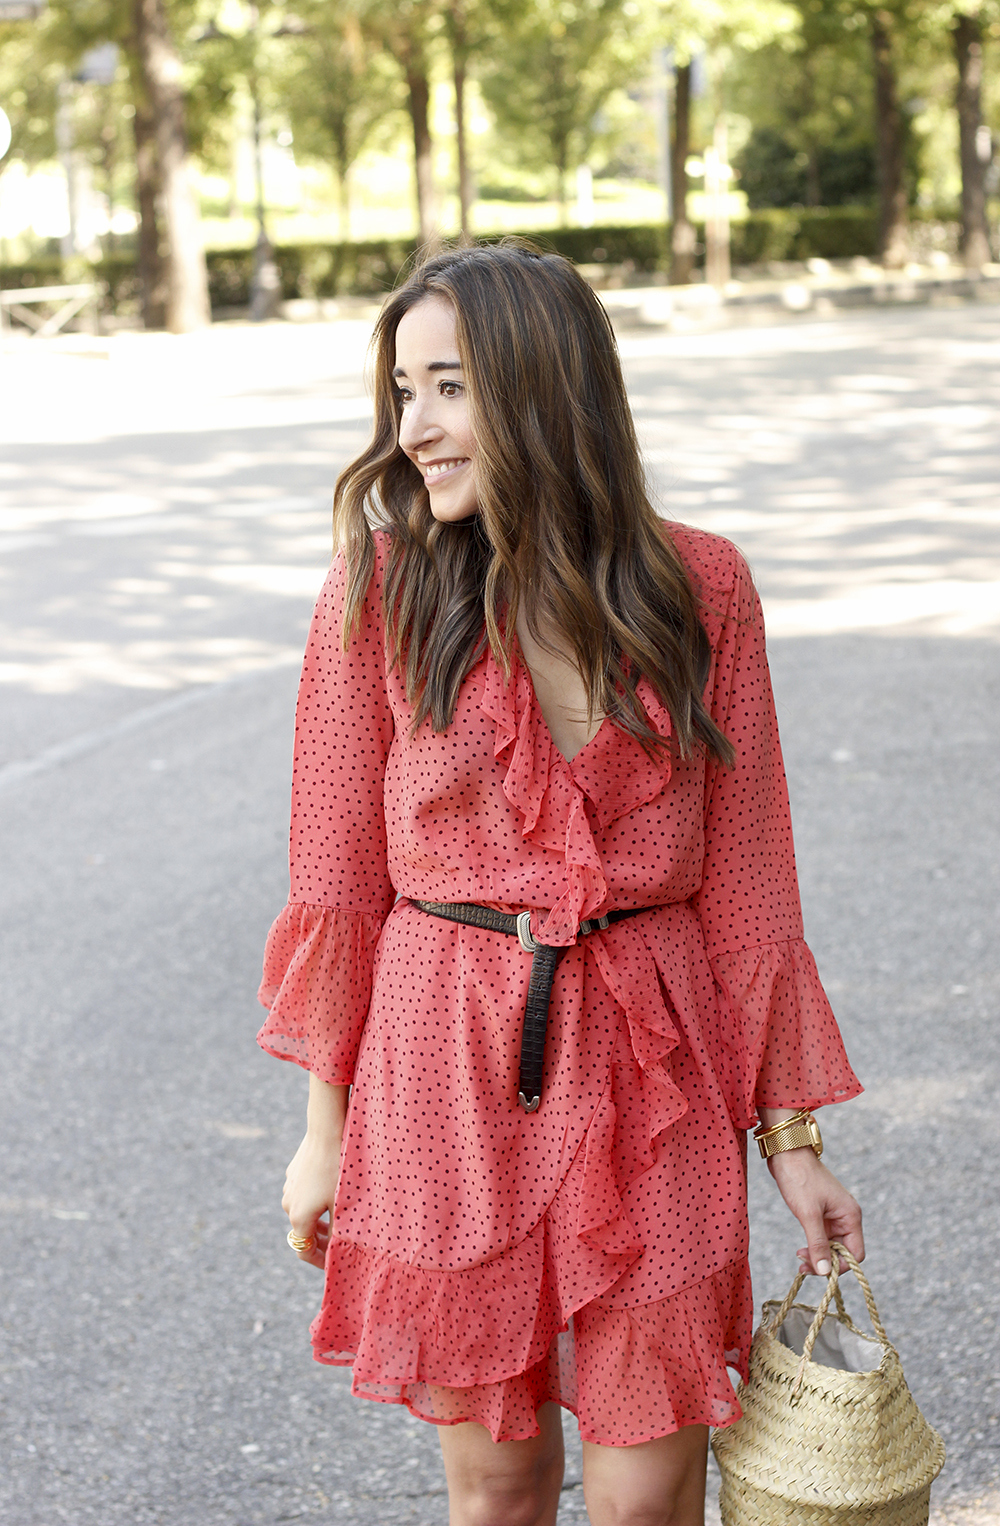 coral dress with dots and frills uterqüe black heels summer outfit style fashion08